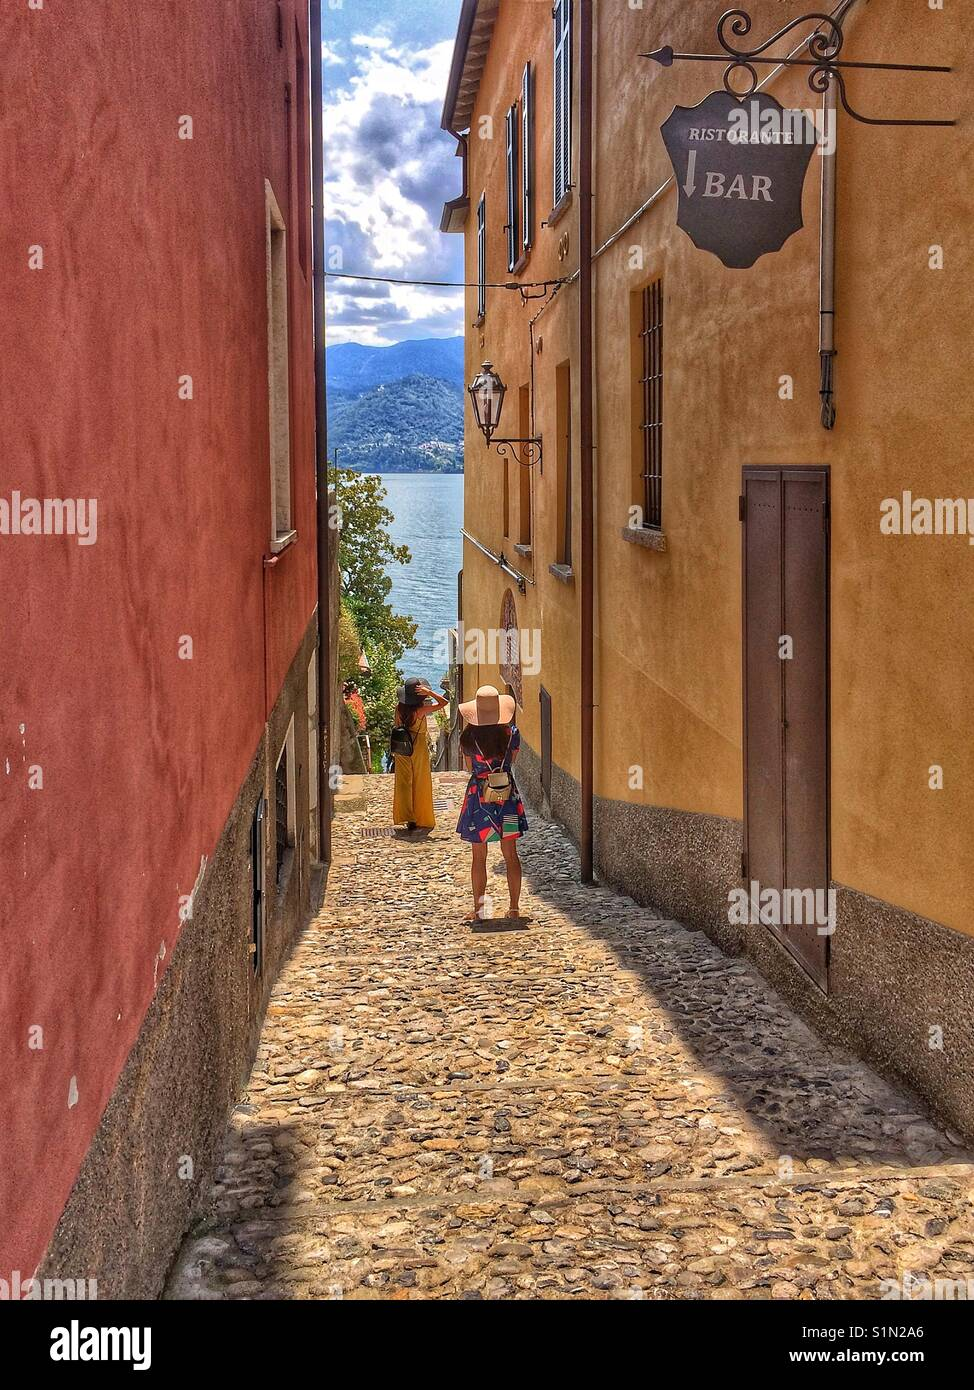 Cobbled alleyway Varenna Italy - Stock Image